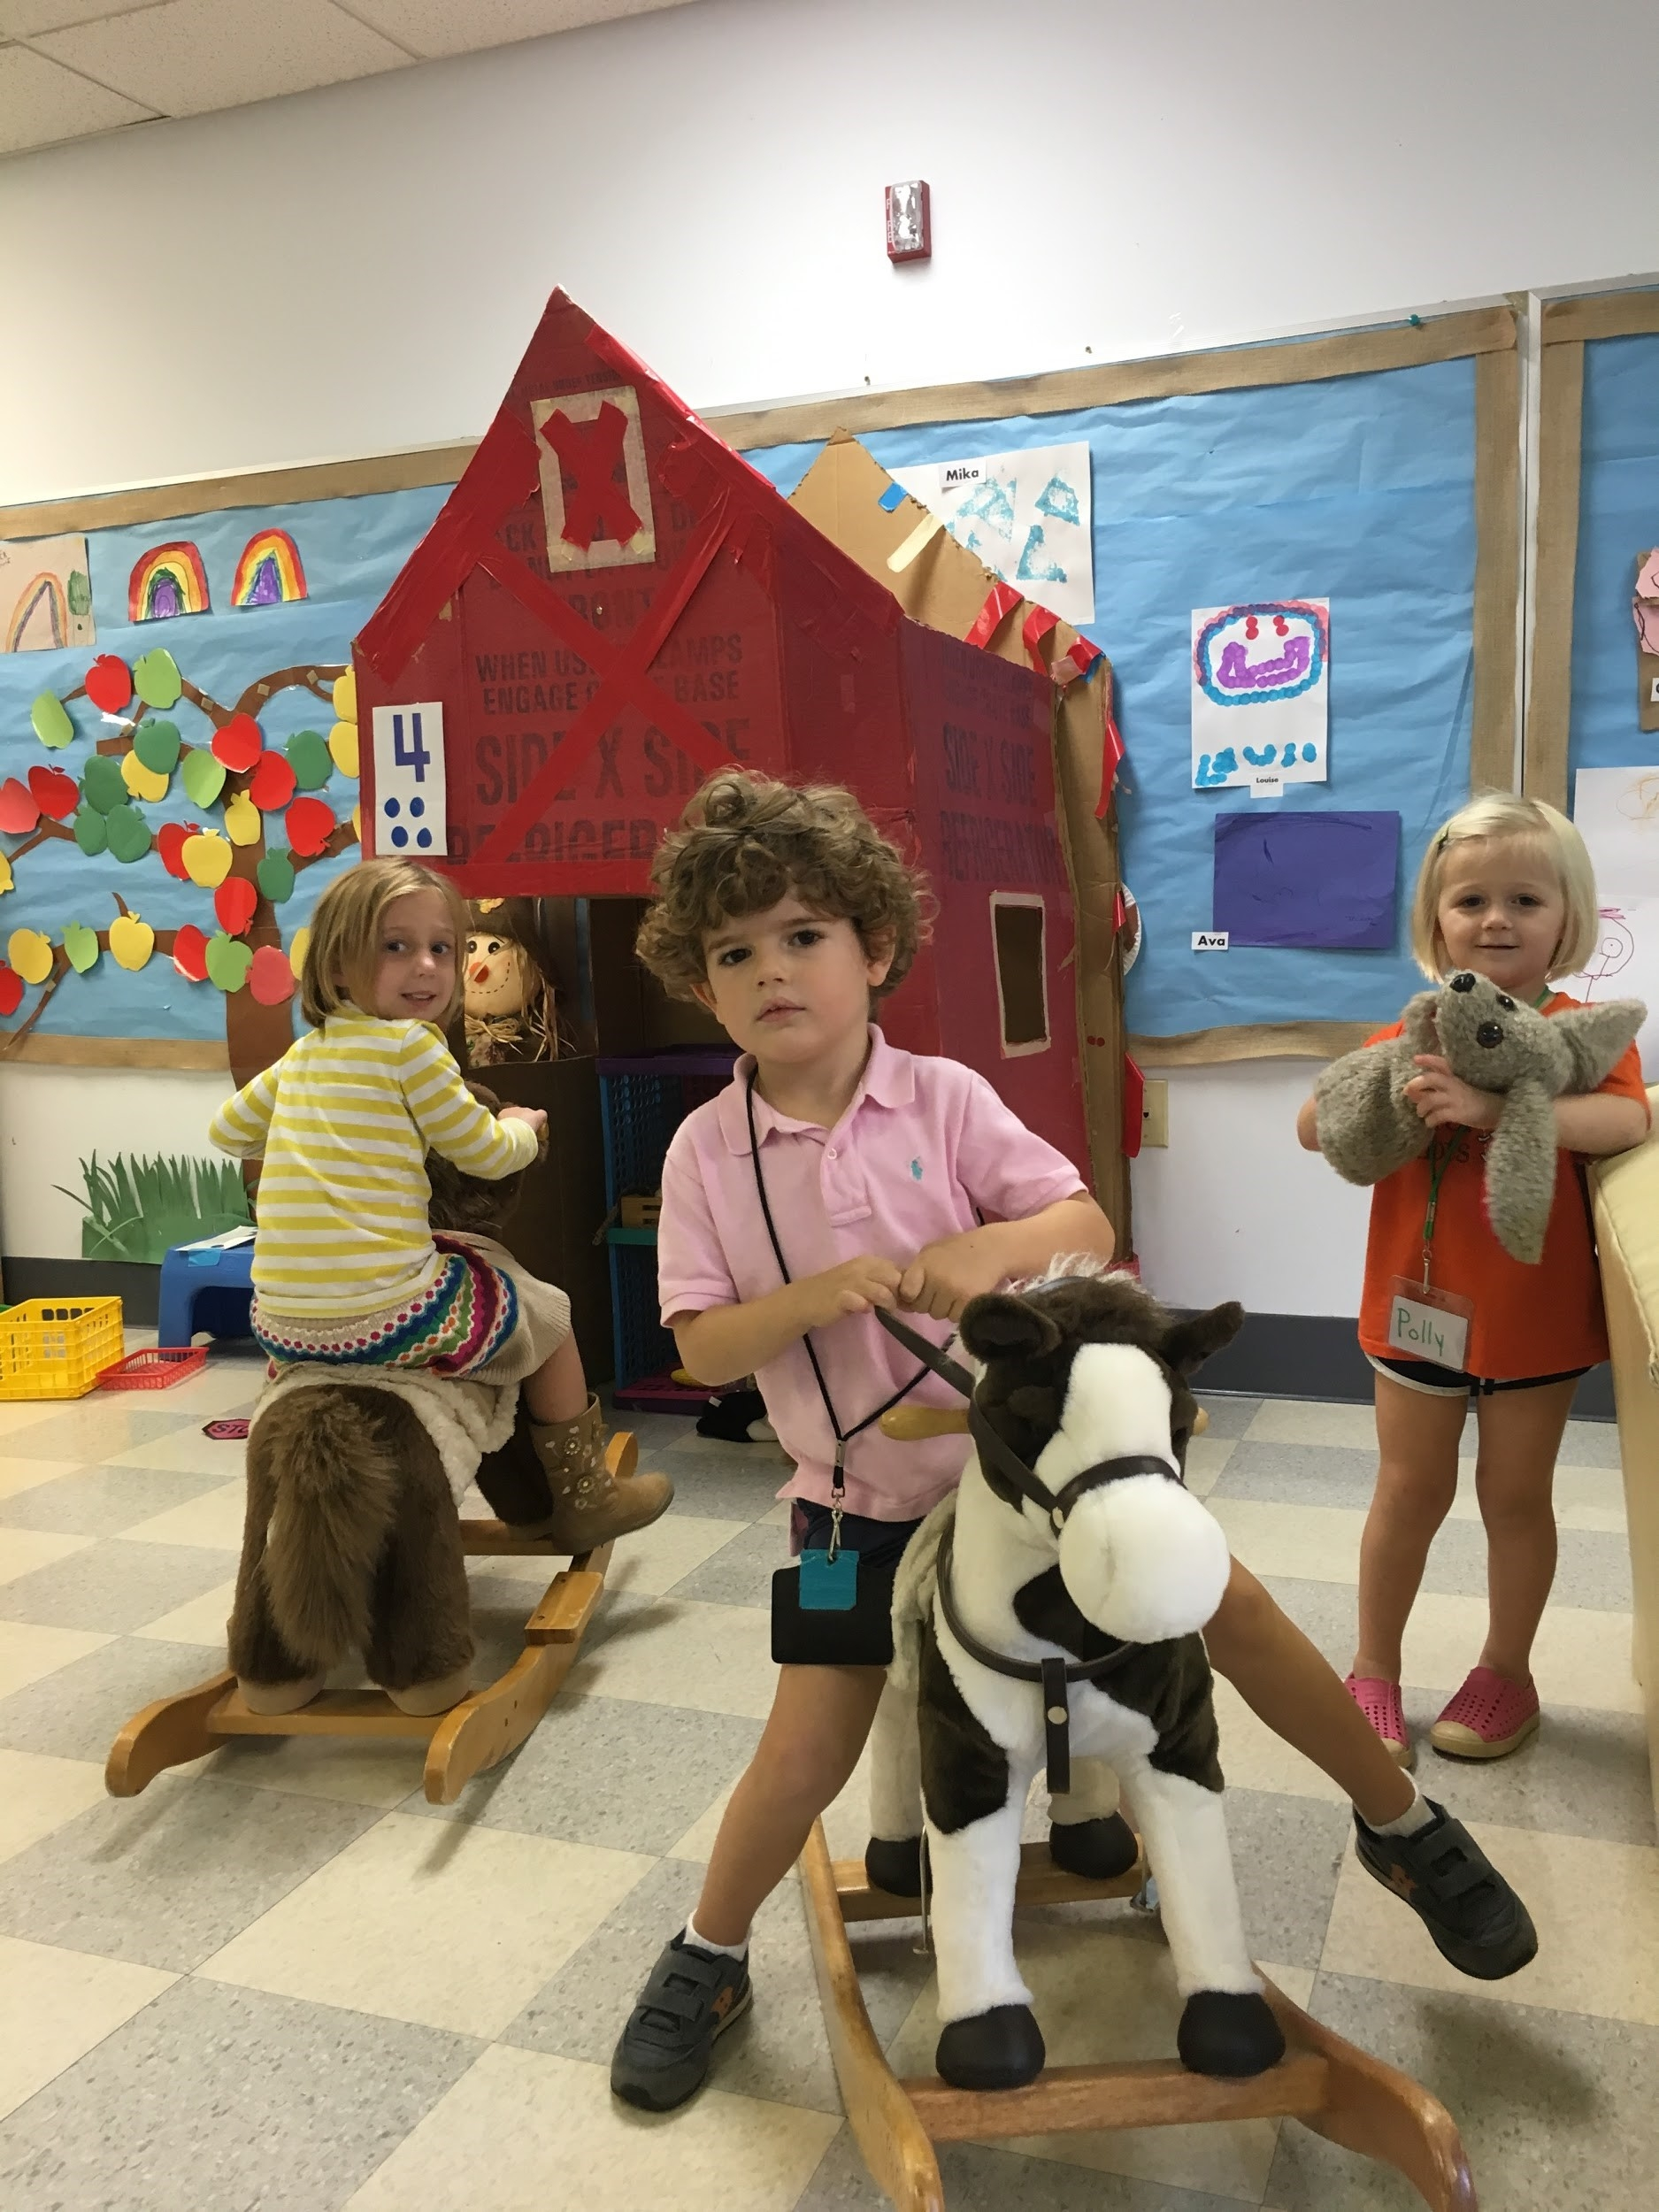 The barn continues to be very popular. Some creative stories and conversations are happening in the barn as the children play with the barn animals and one another.